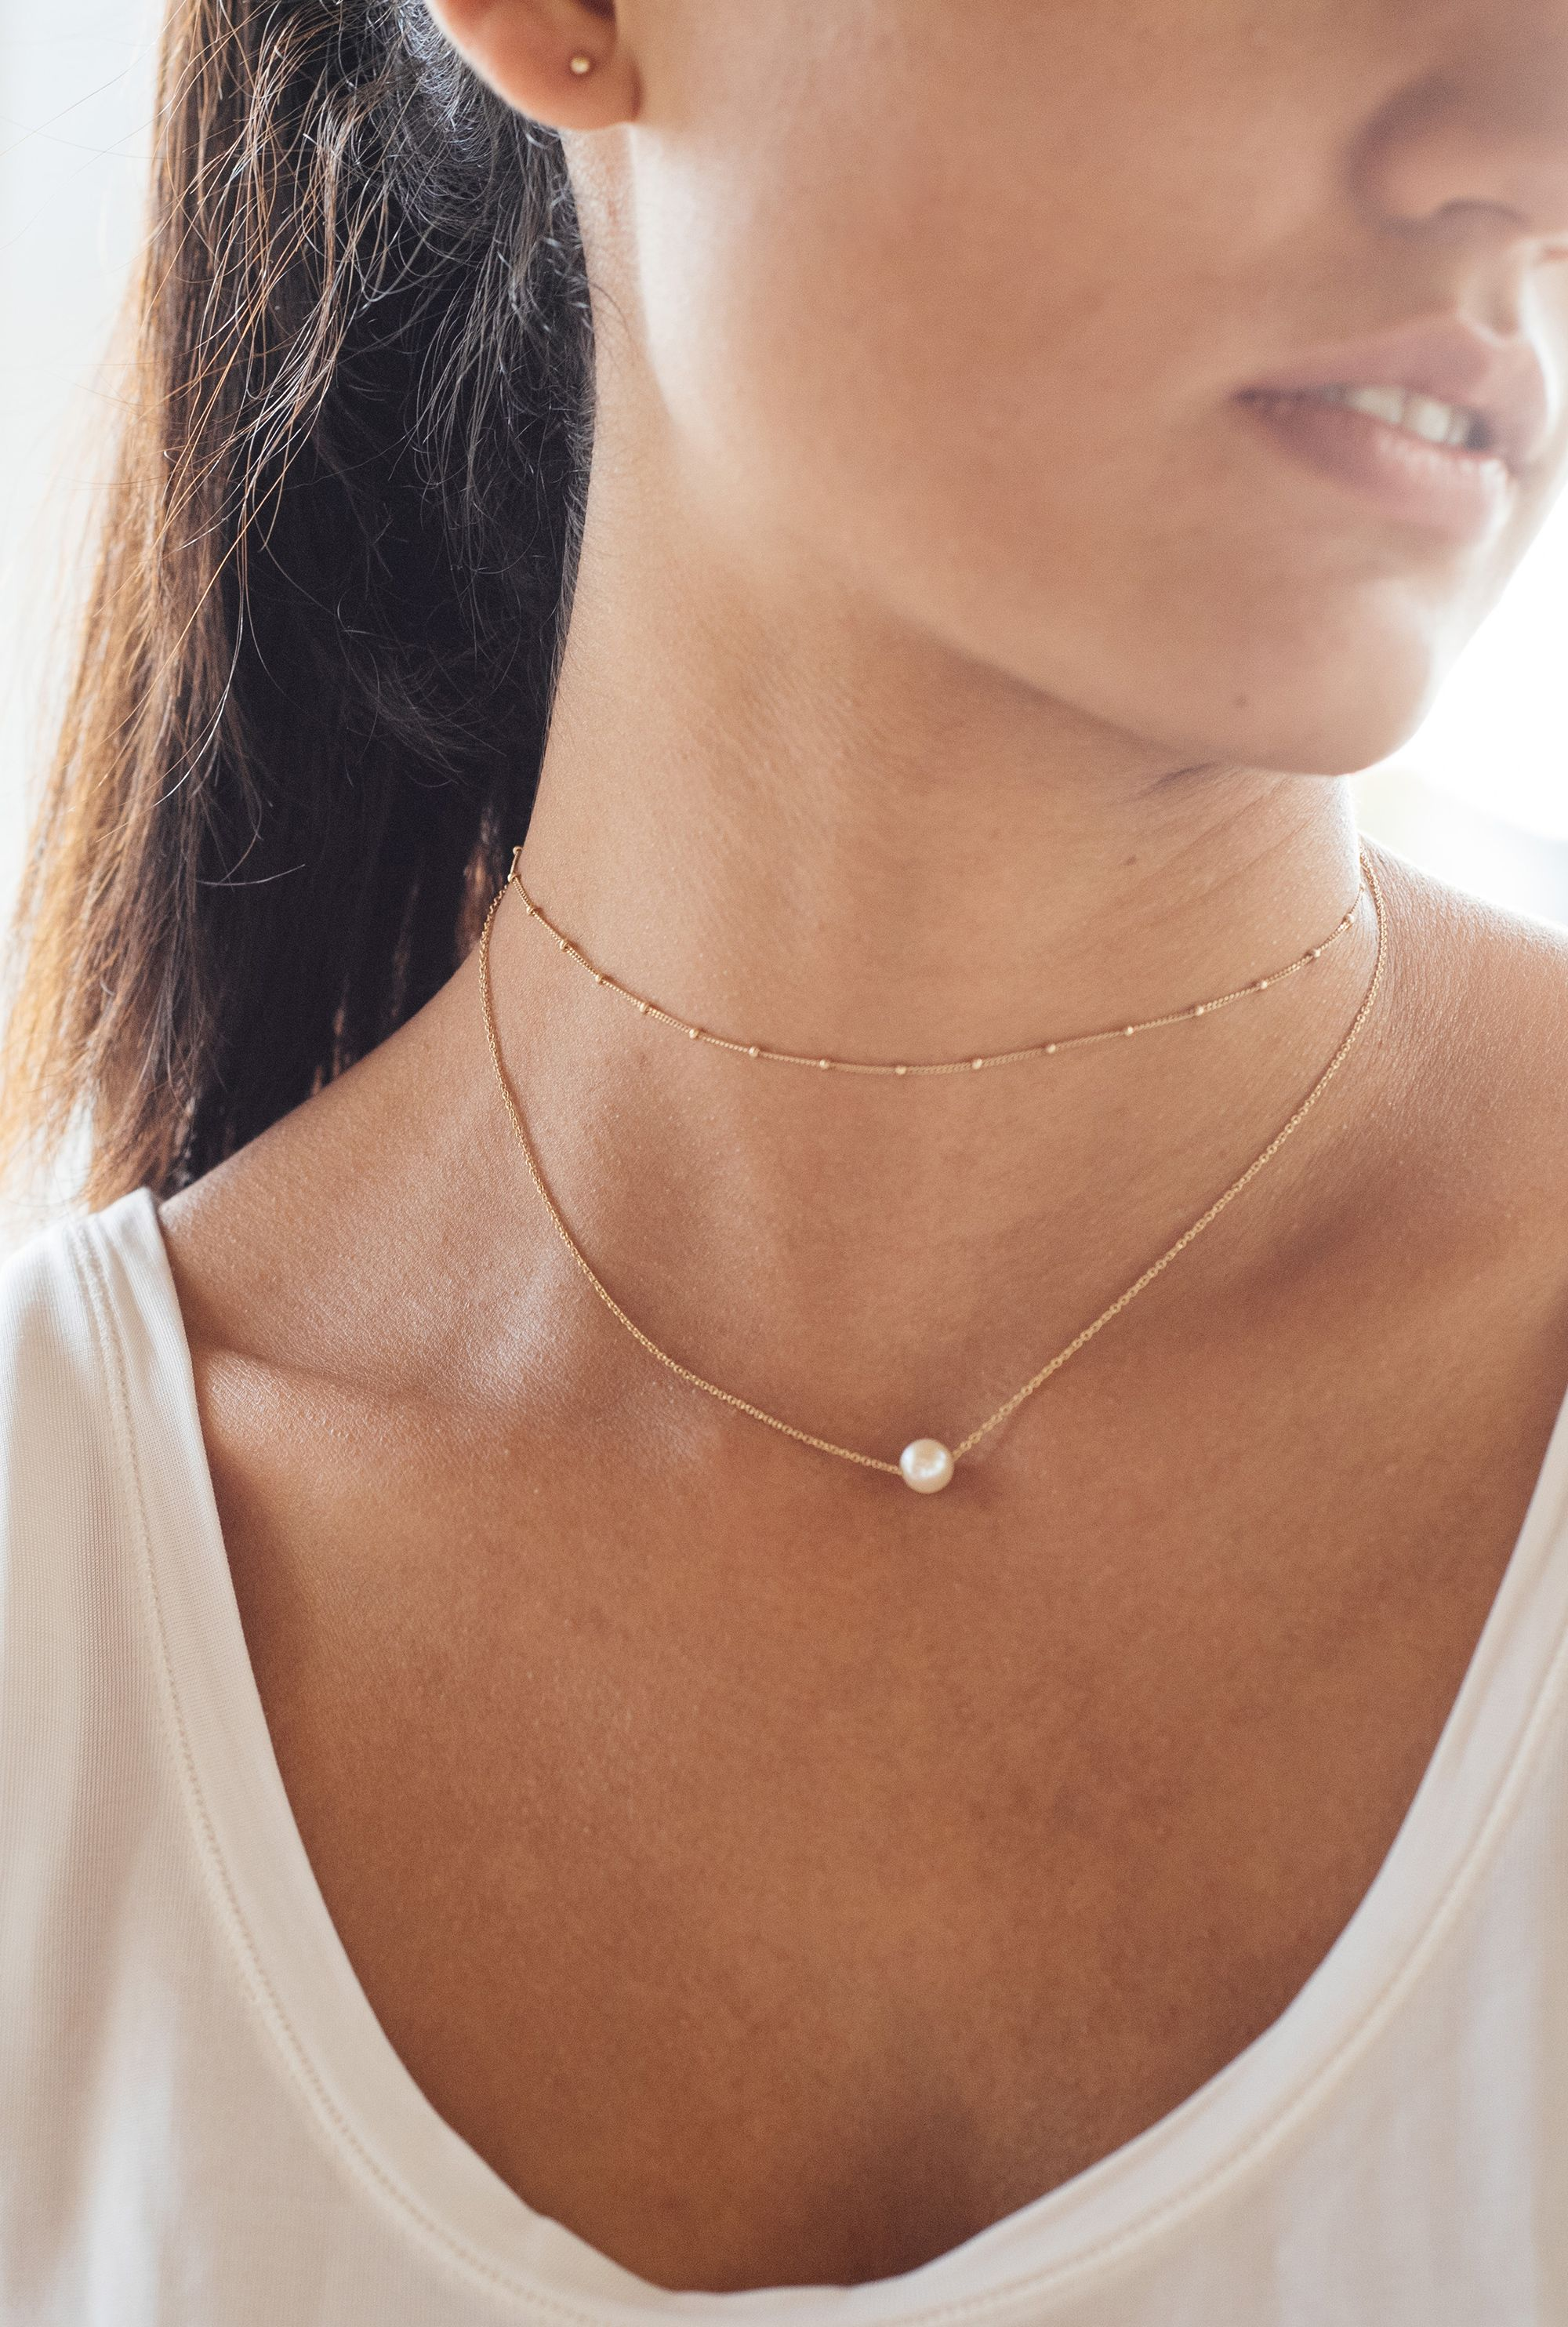 ddf91ec68 Mejuri spheres choker and pearl necklace in 14 solid gold. | clothes ...